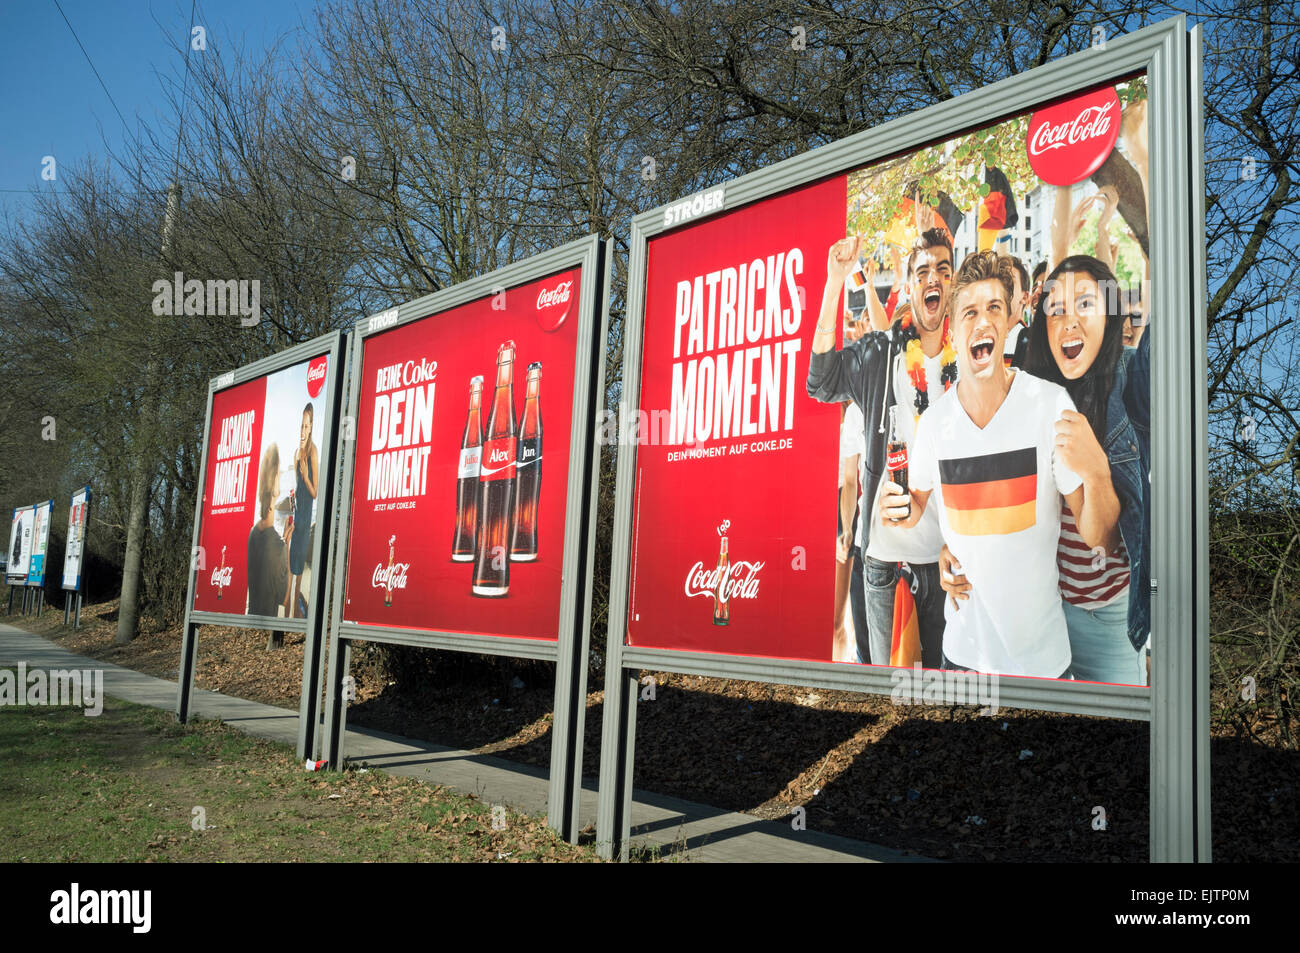 Coca Cola billboard adverts Germany - Stock Image